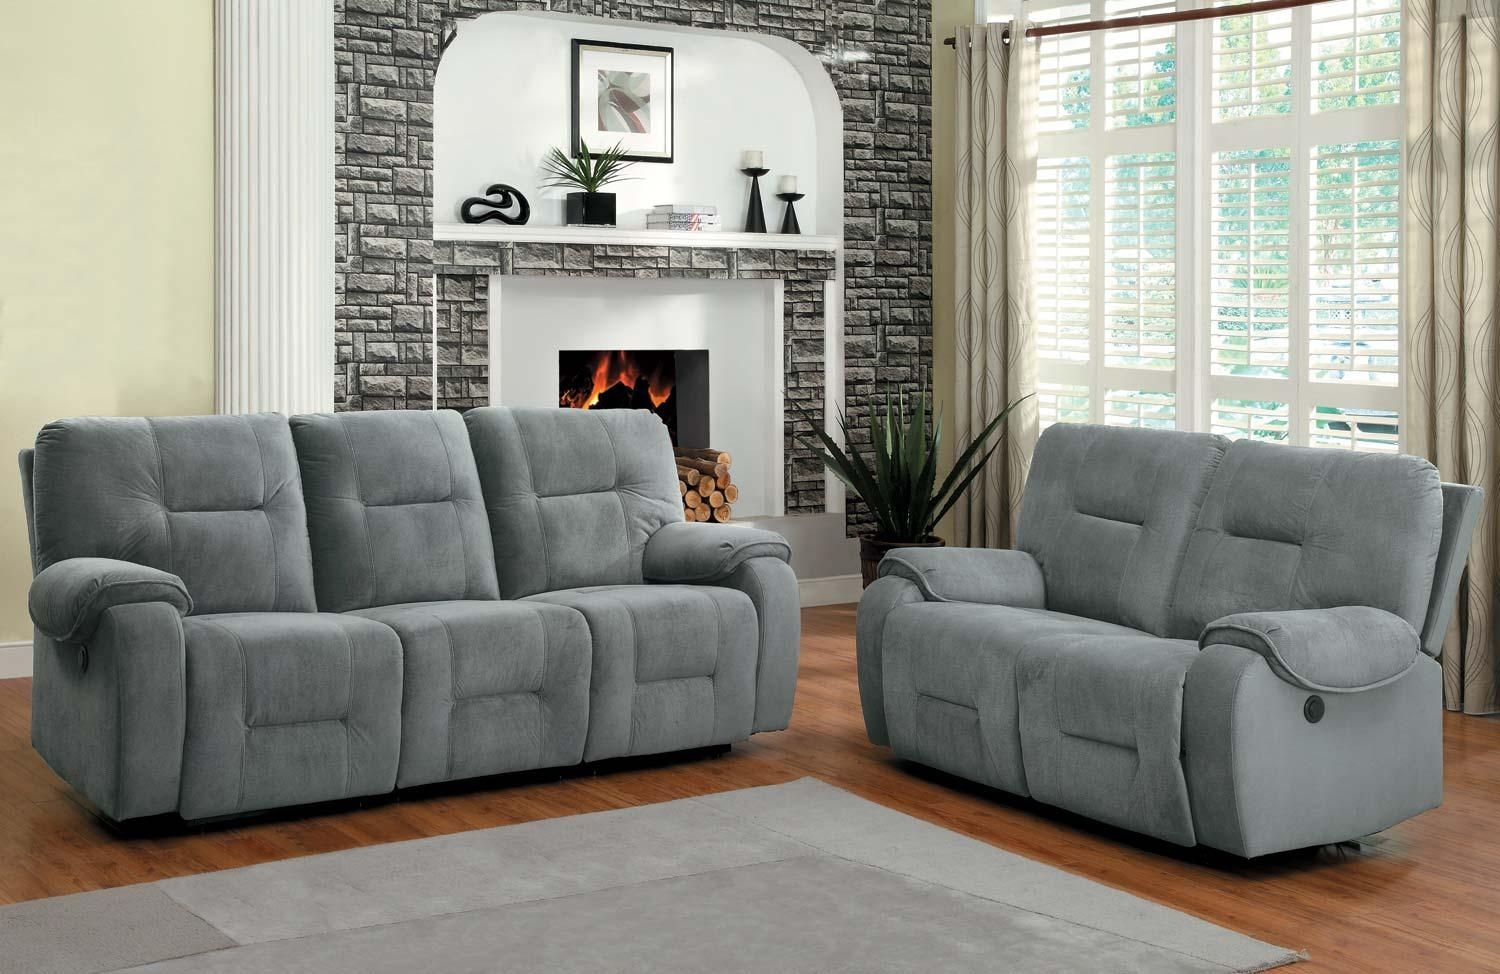 Homelegance Bensonhurst Power Reclining Sofa Set – Blue Grey Intended For Blue Grey Sofas (Image 11 of 20)